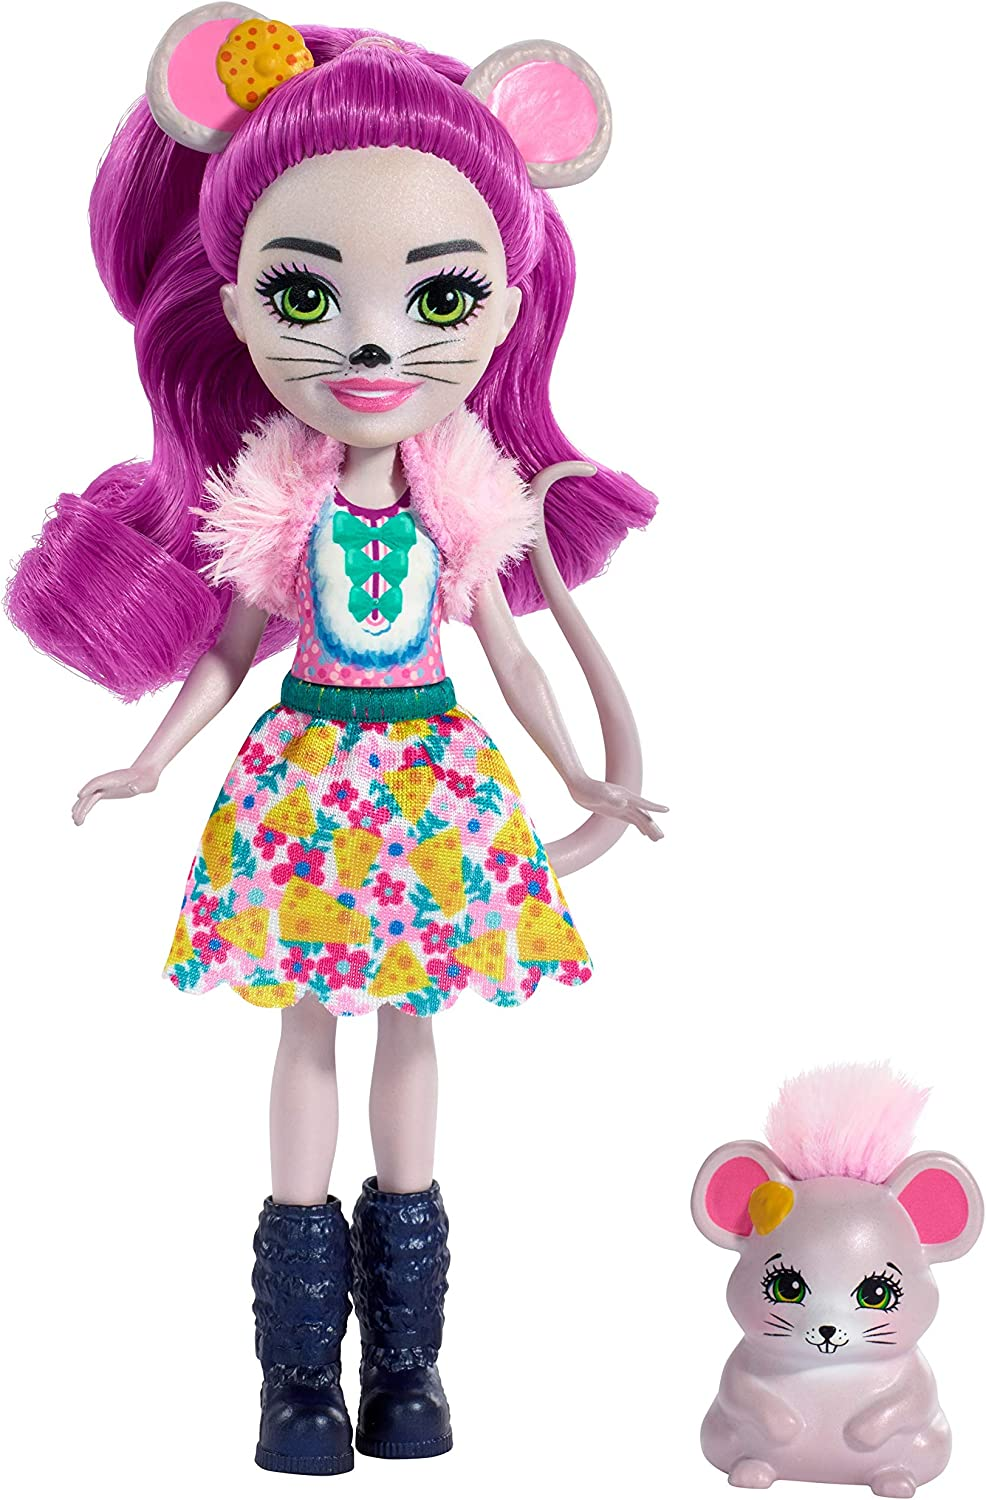 Figurine Enchantimals Mayla en promotion